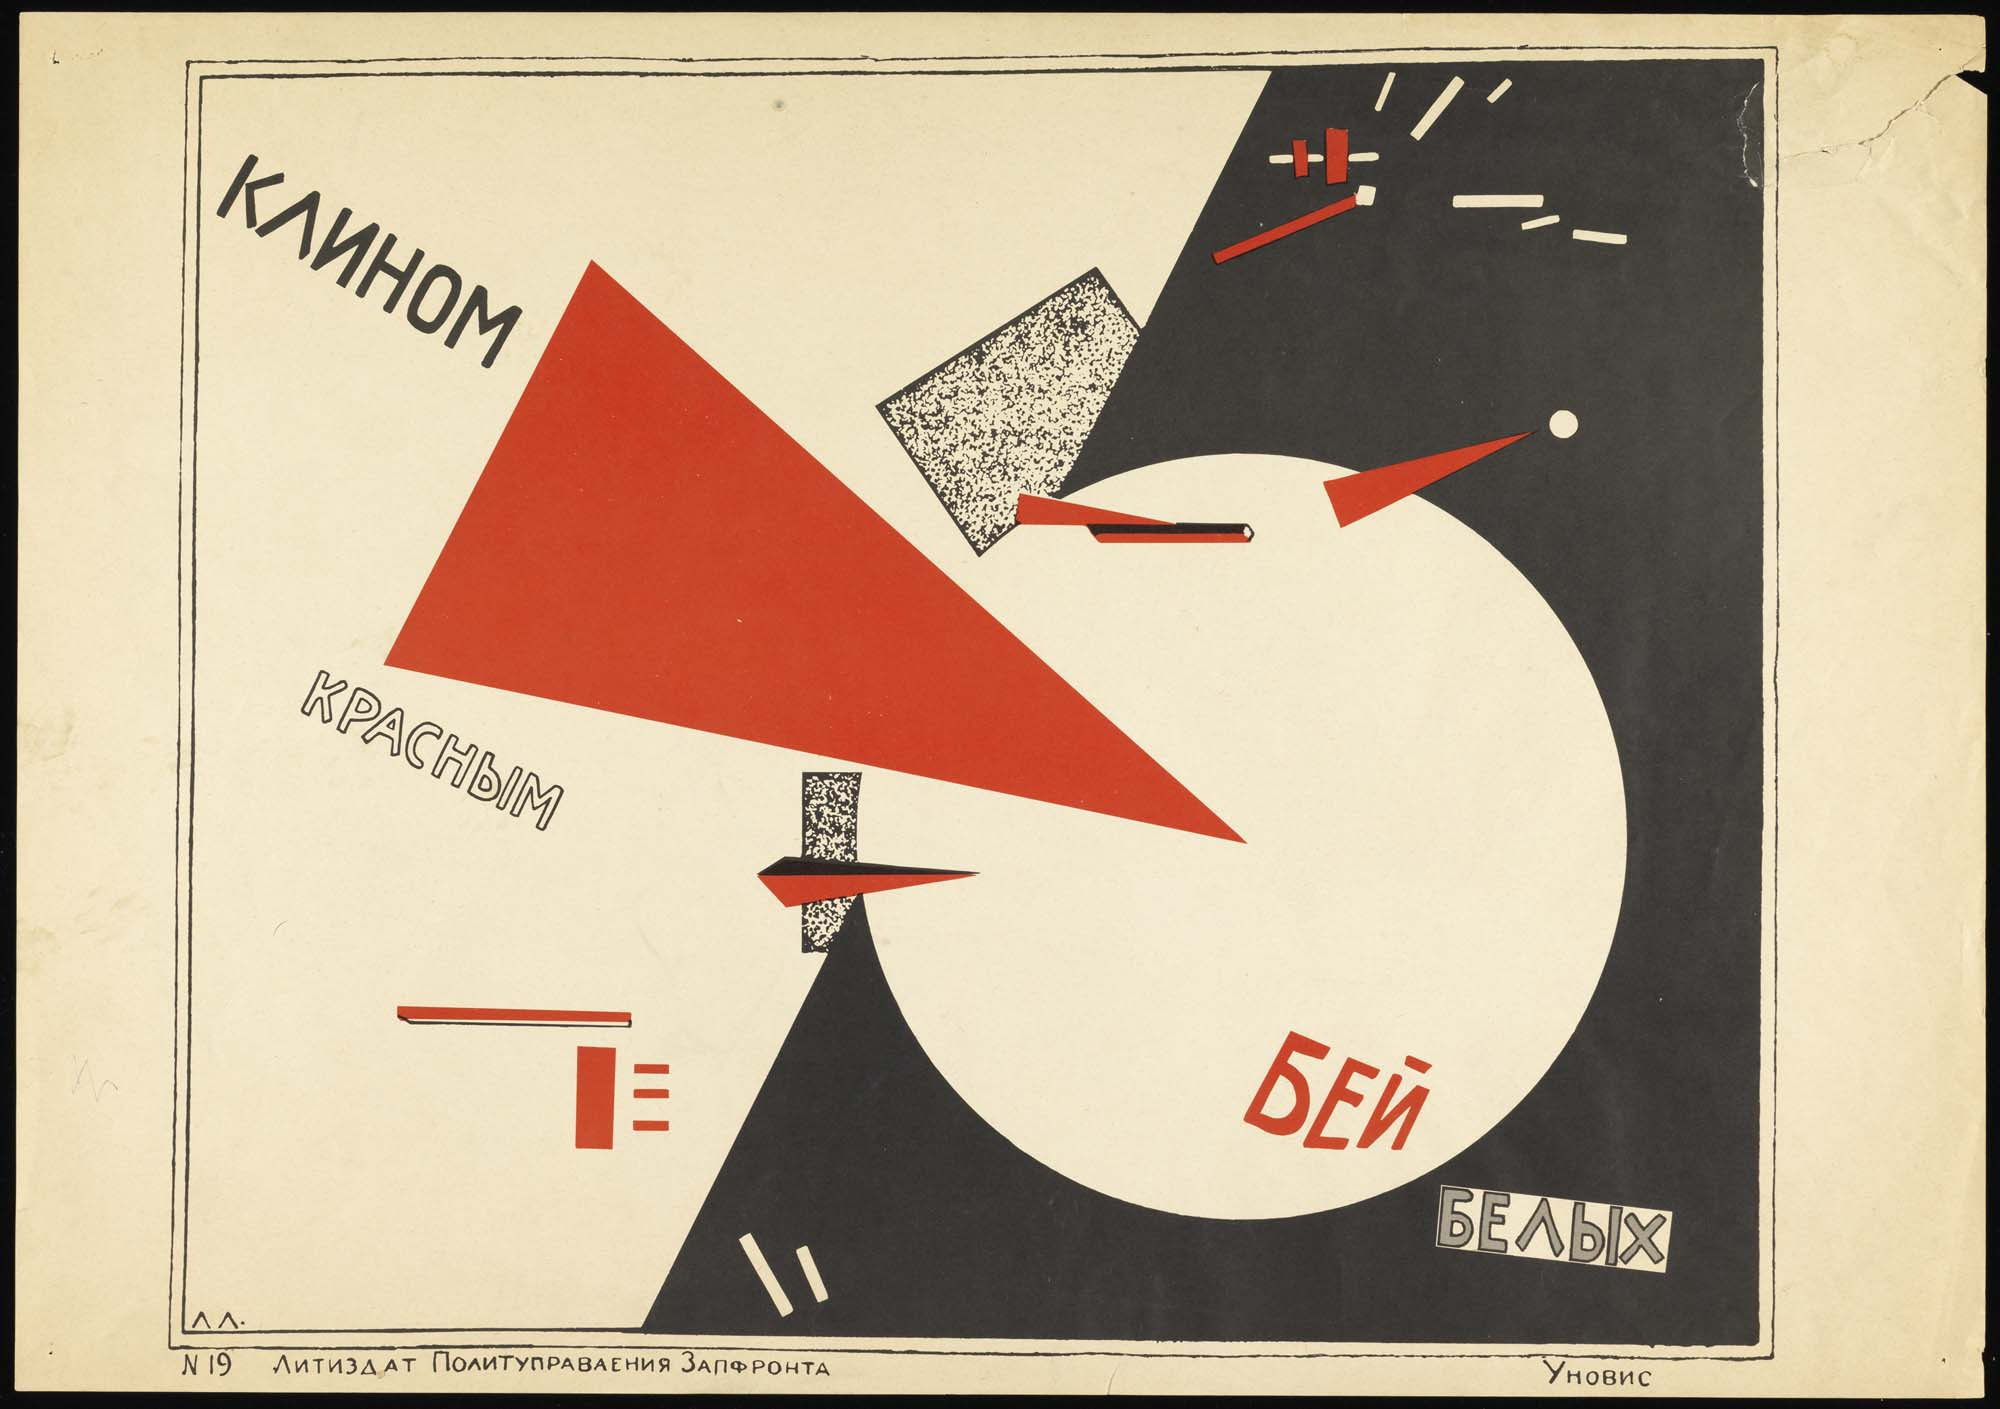 an abstract poster design with a red wedge piercing a white circle